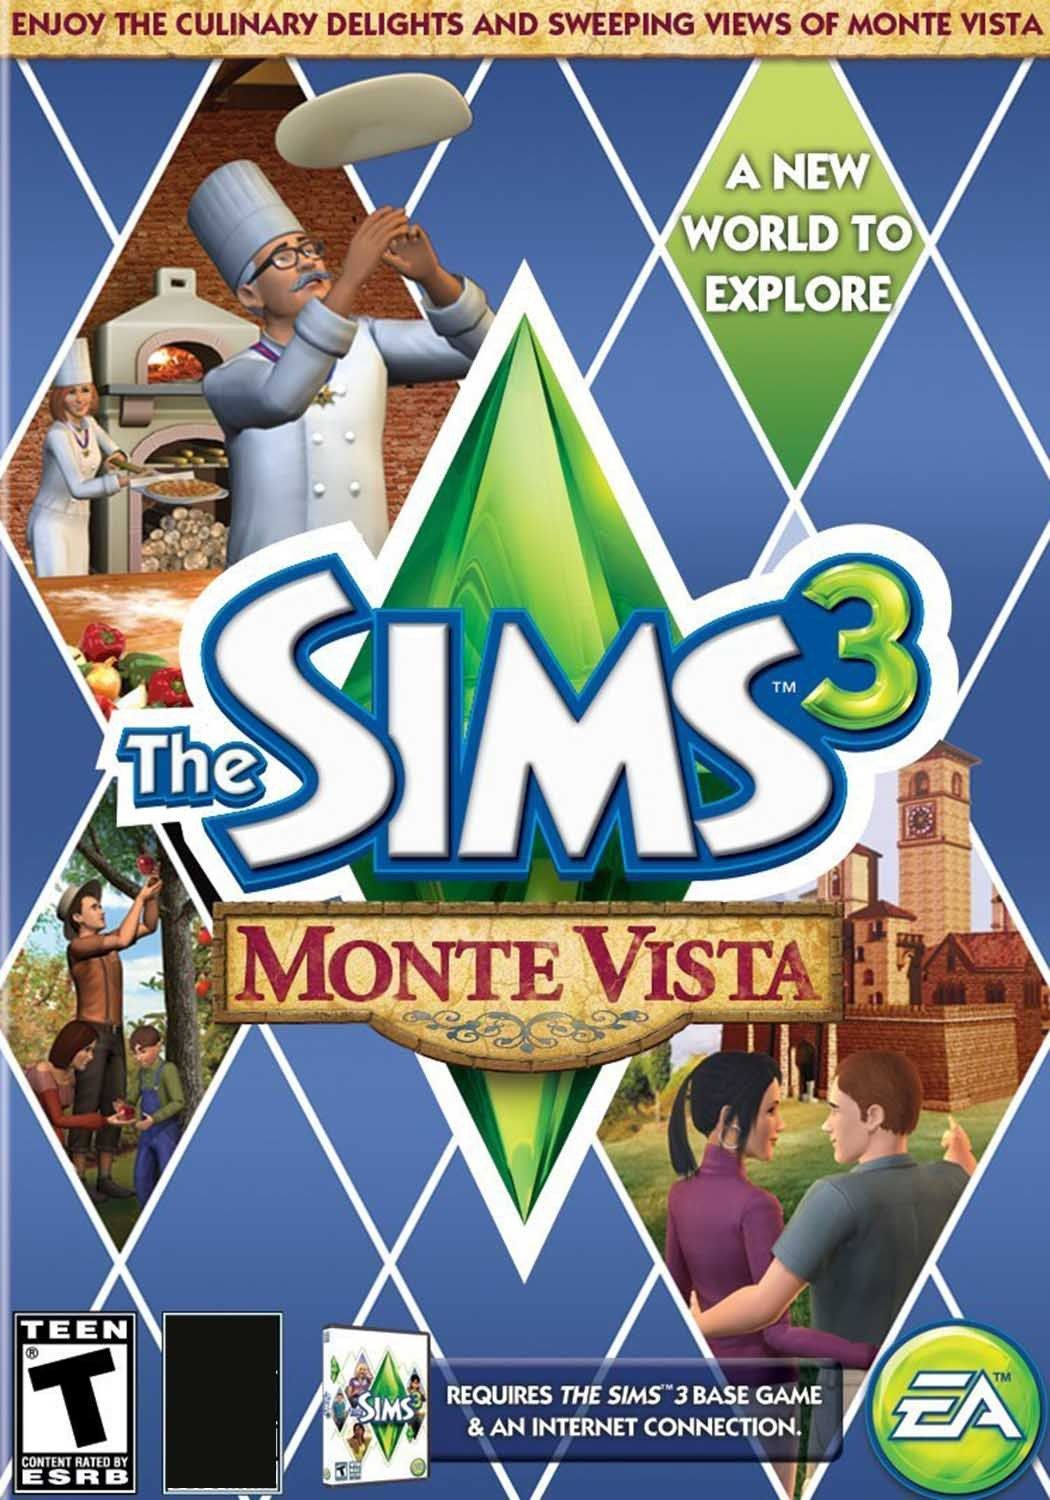 THE SIMS 3 MONTE VISTA EXPANSION PACK